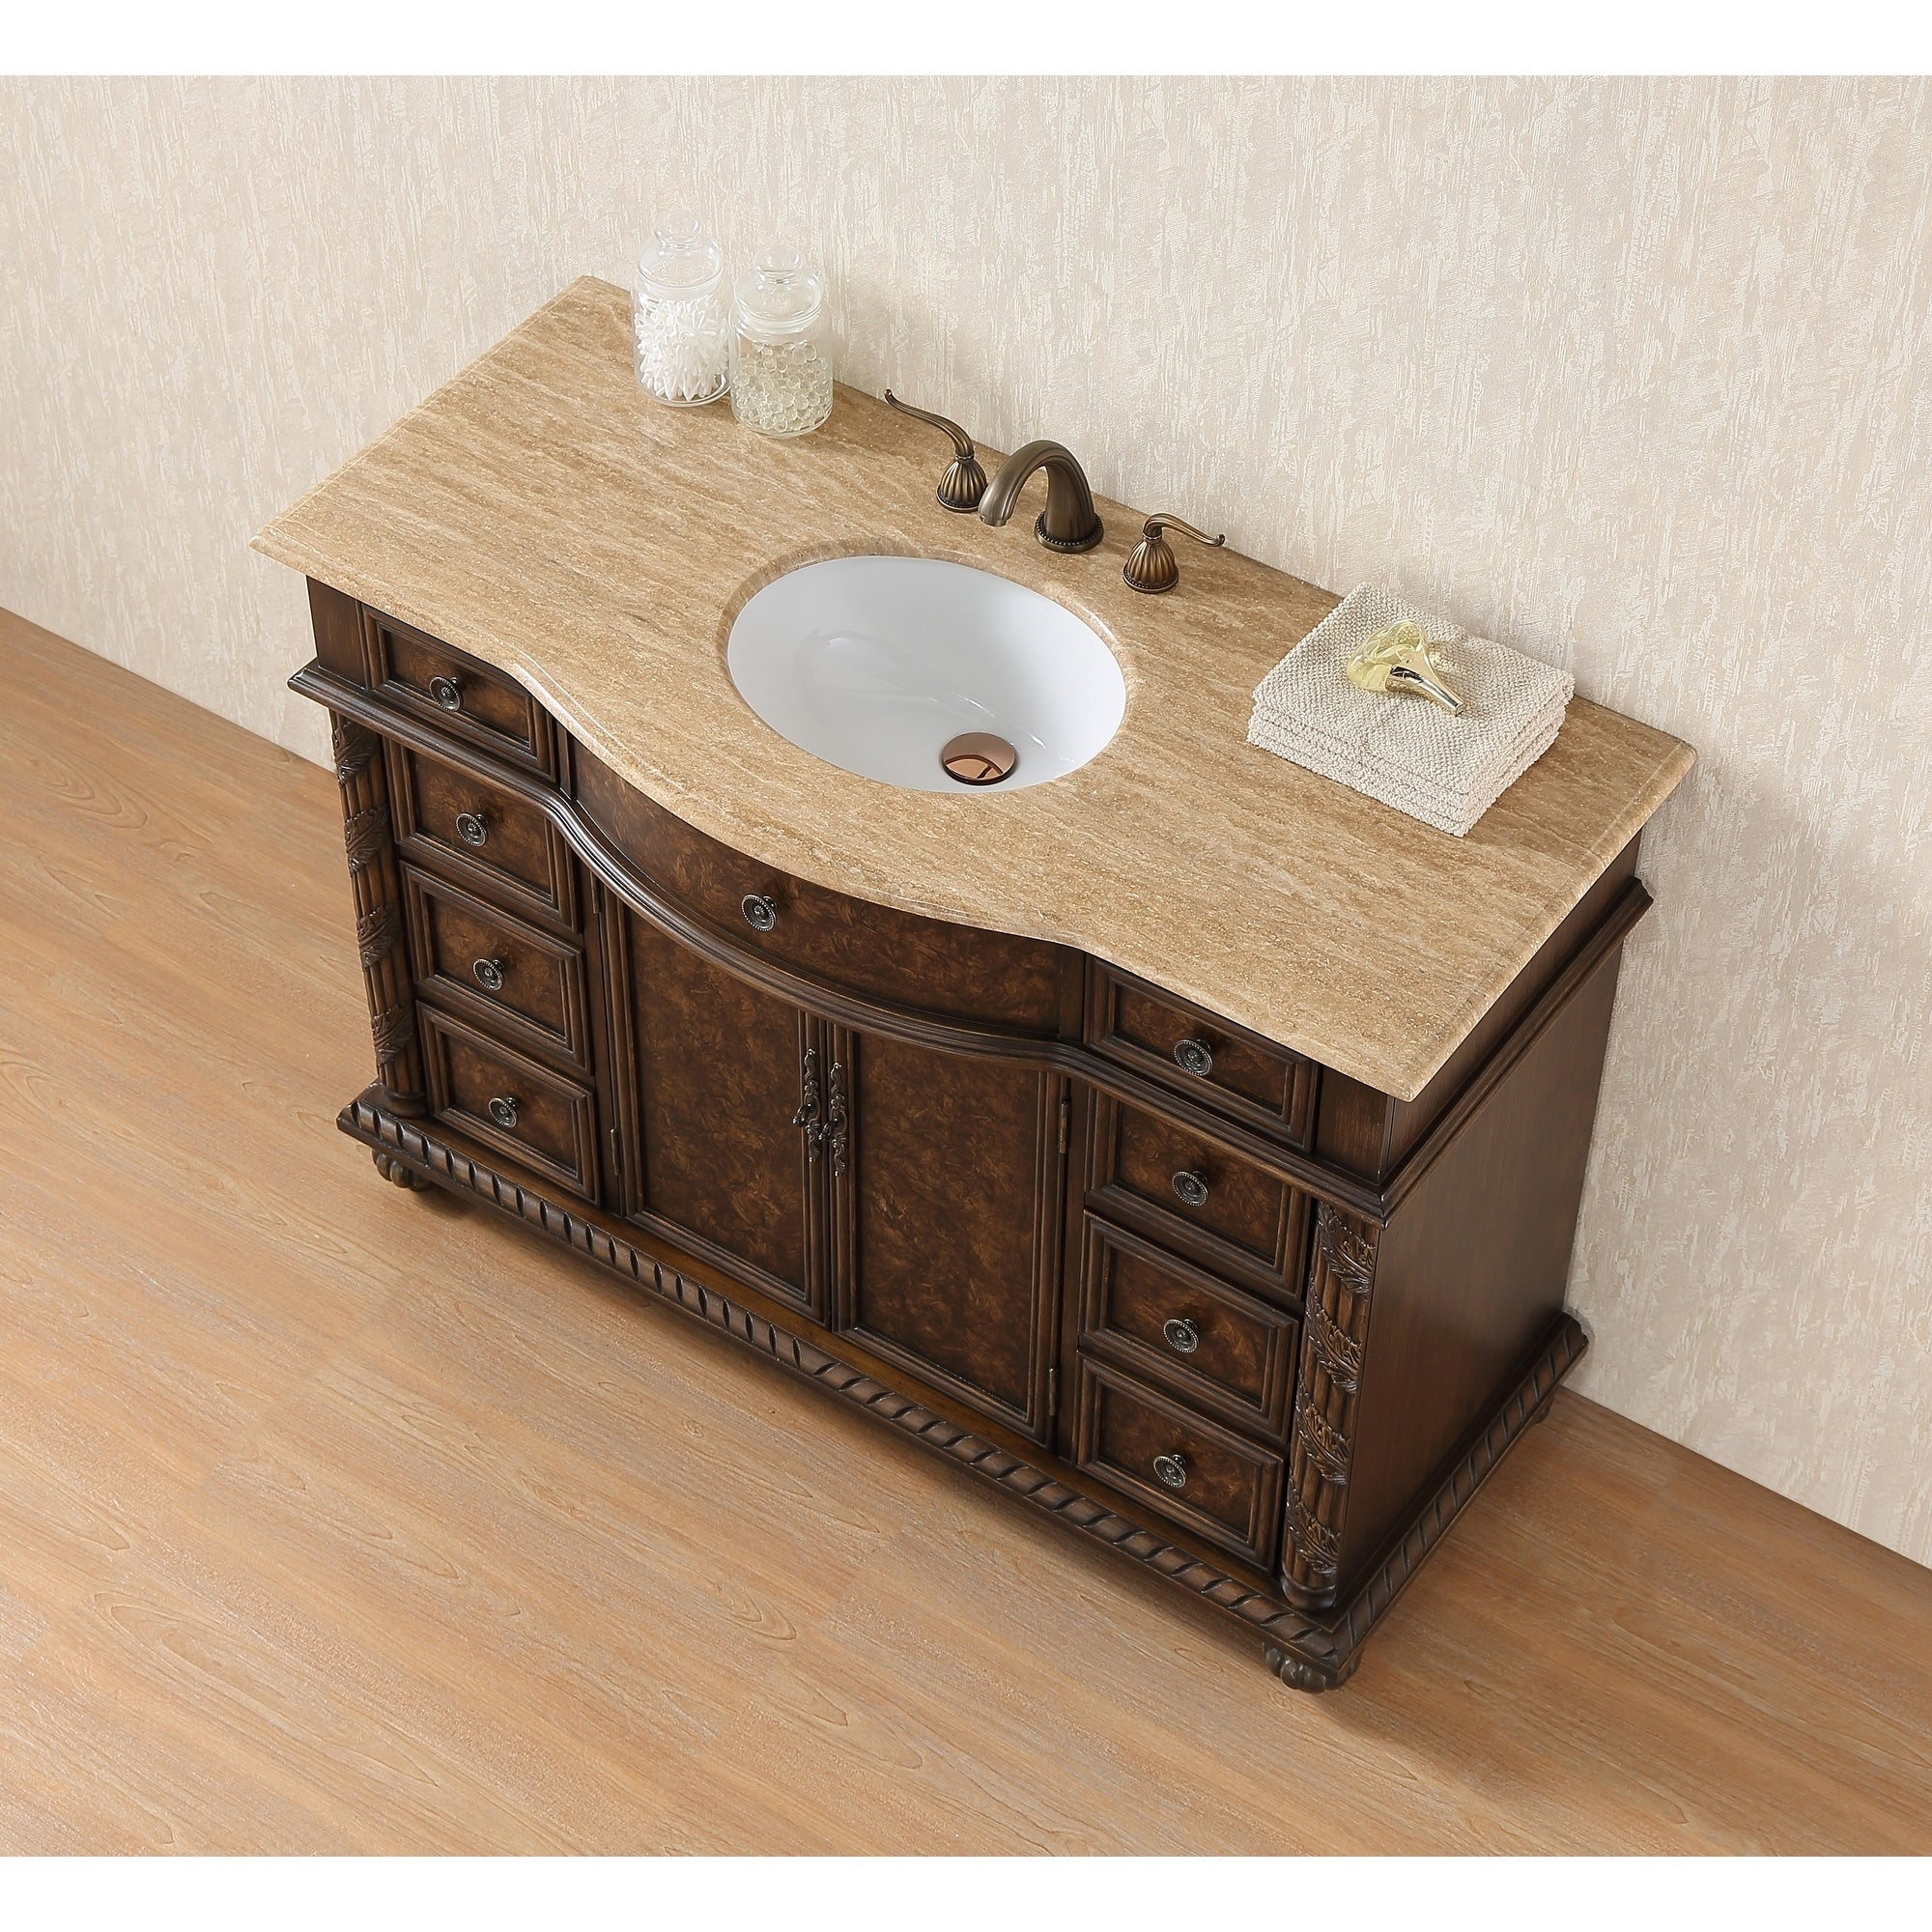 41 50 Inches Bathroom Vanities U0026 Vanity Cabinets For Less | Overstock.com